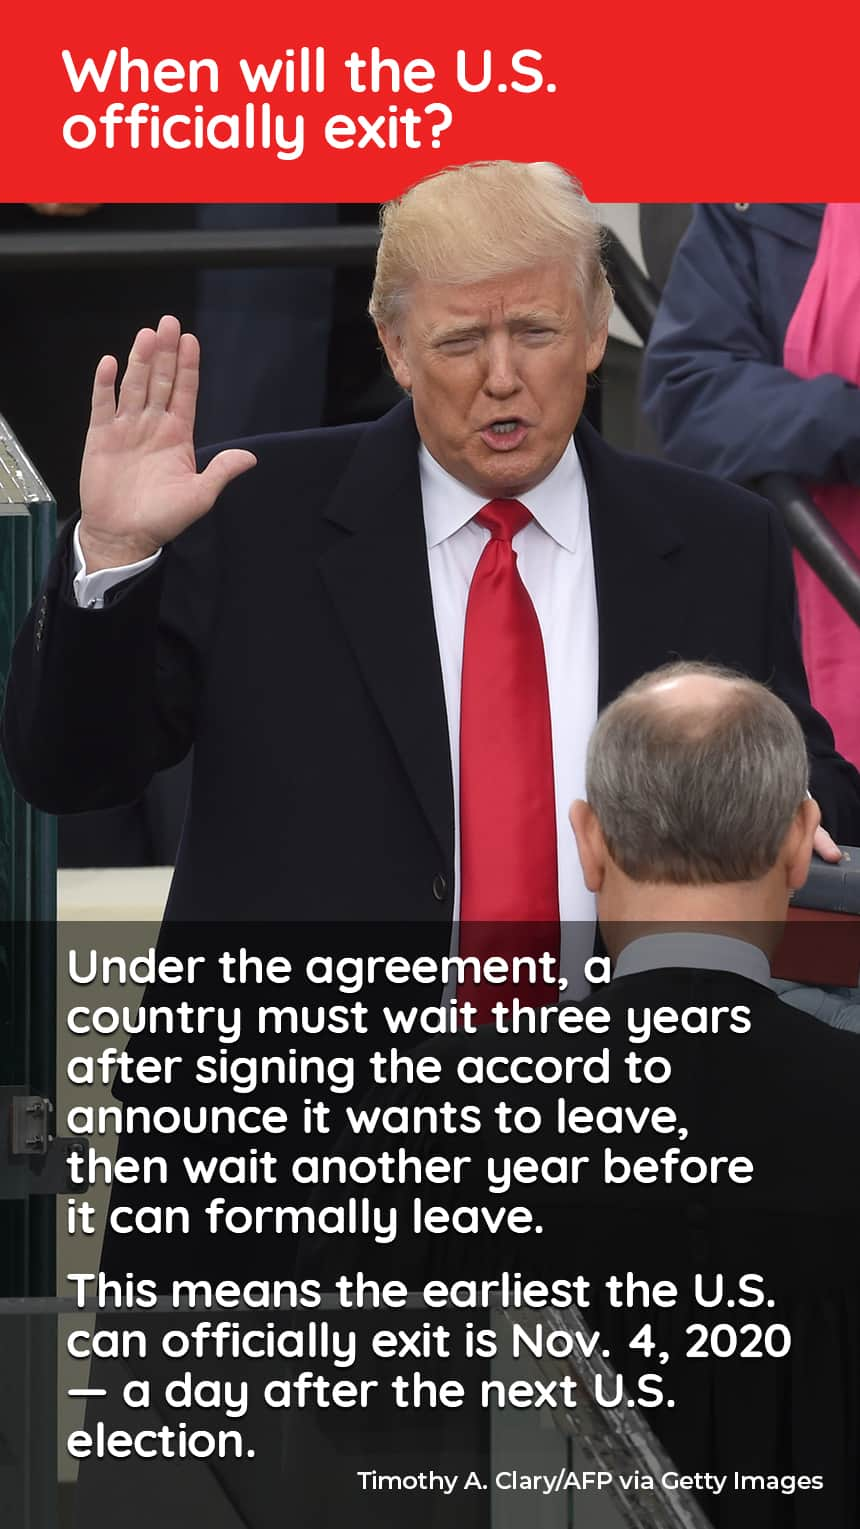 An image of Donald Trump being sworn in as president with text that says, When will the U.S. officially exit? Under the agreement, a country must wait three years after signing the accord to announce they want to leave, then wait another year before it can formally leave. This means the earliest the U.S. can officially exit is Nov. 4, 2020 — a day after the next U.S. election.